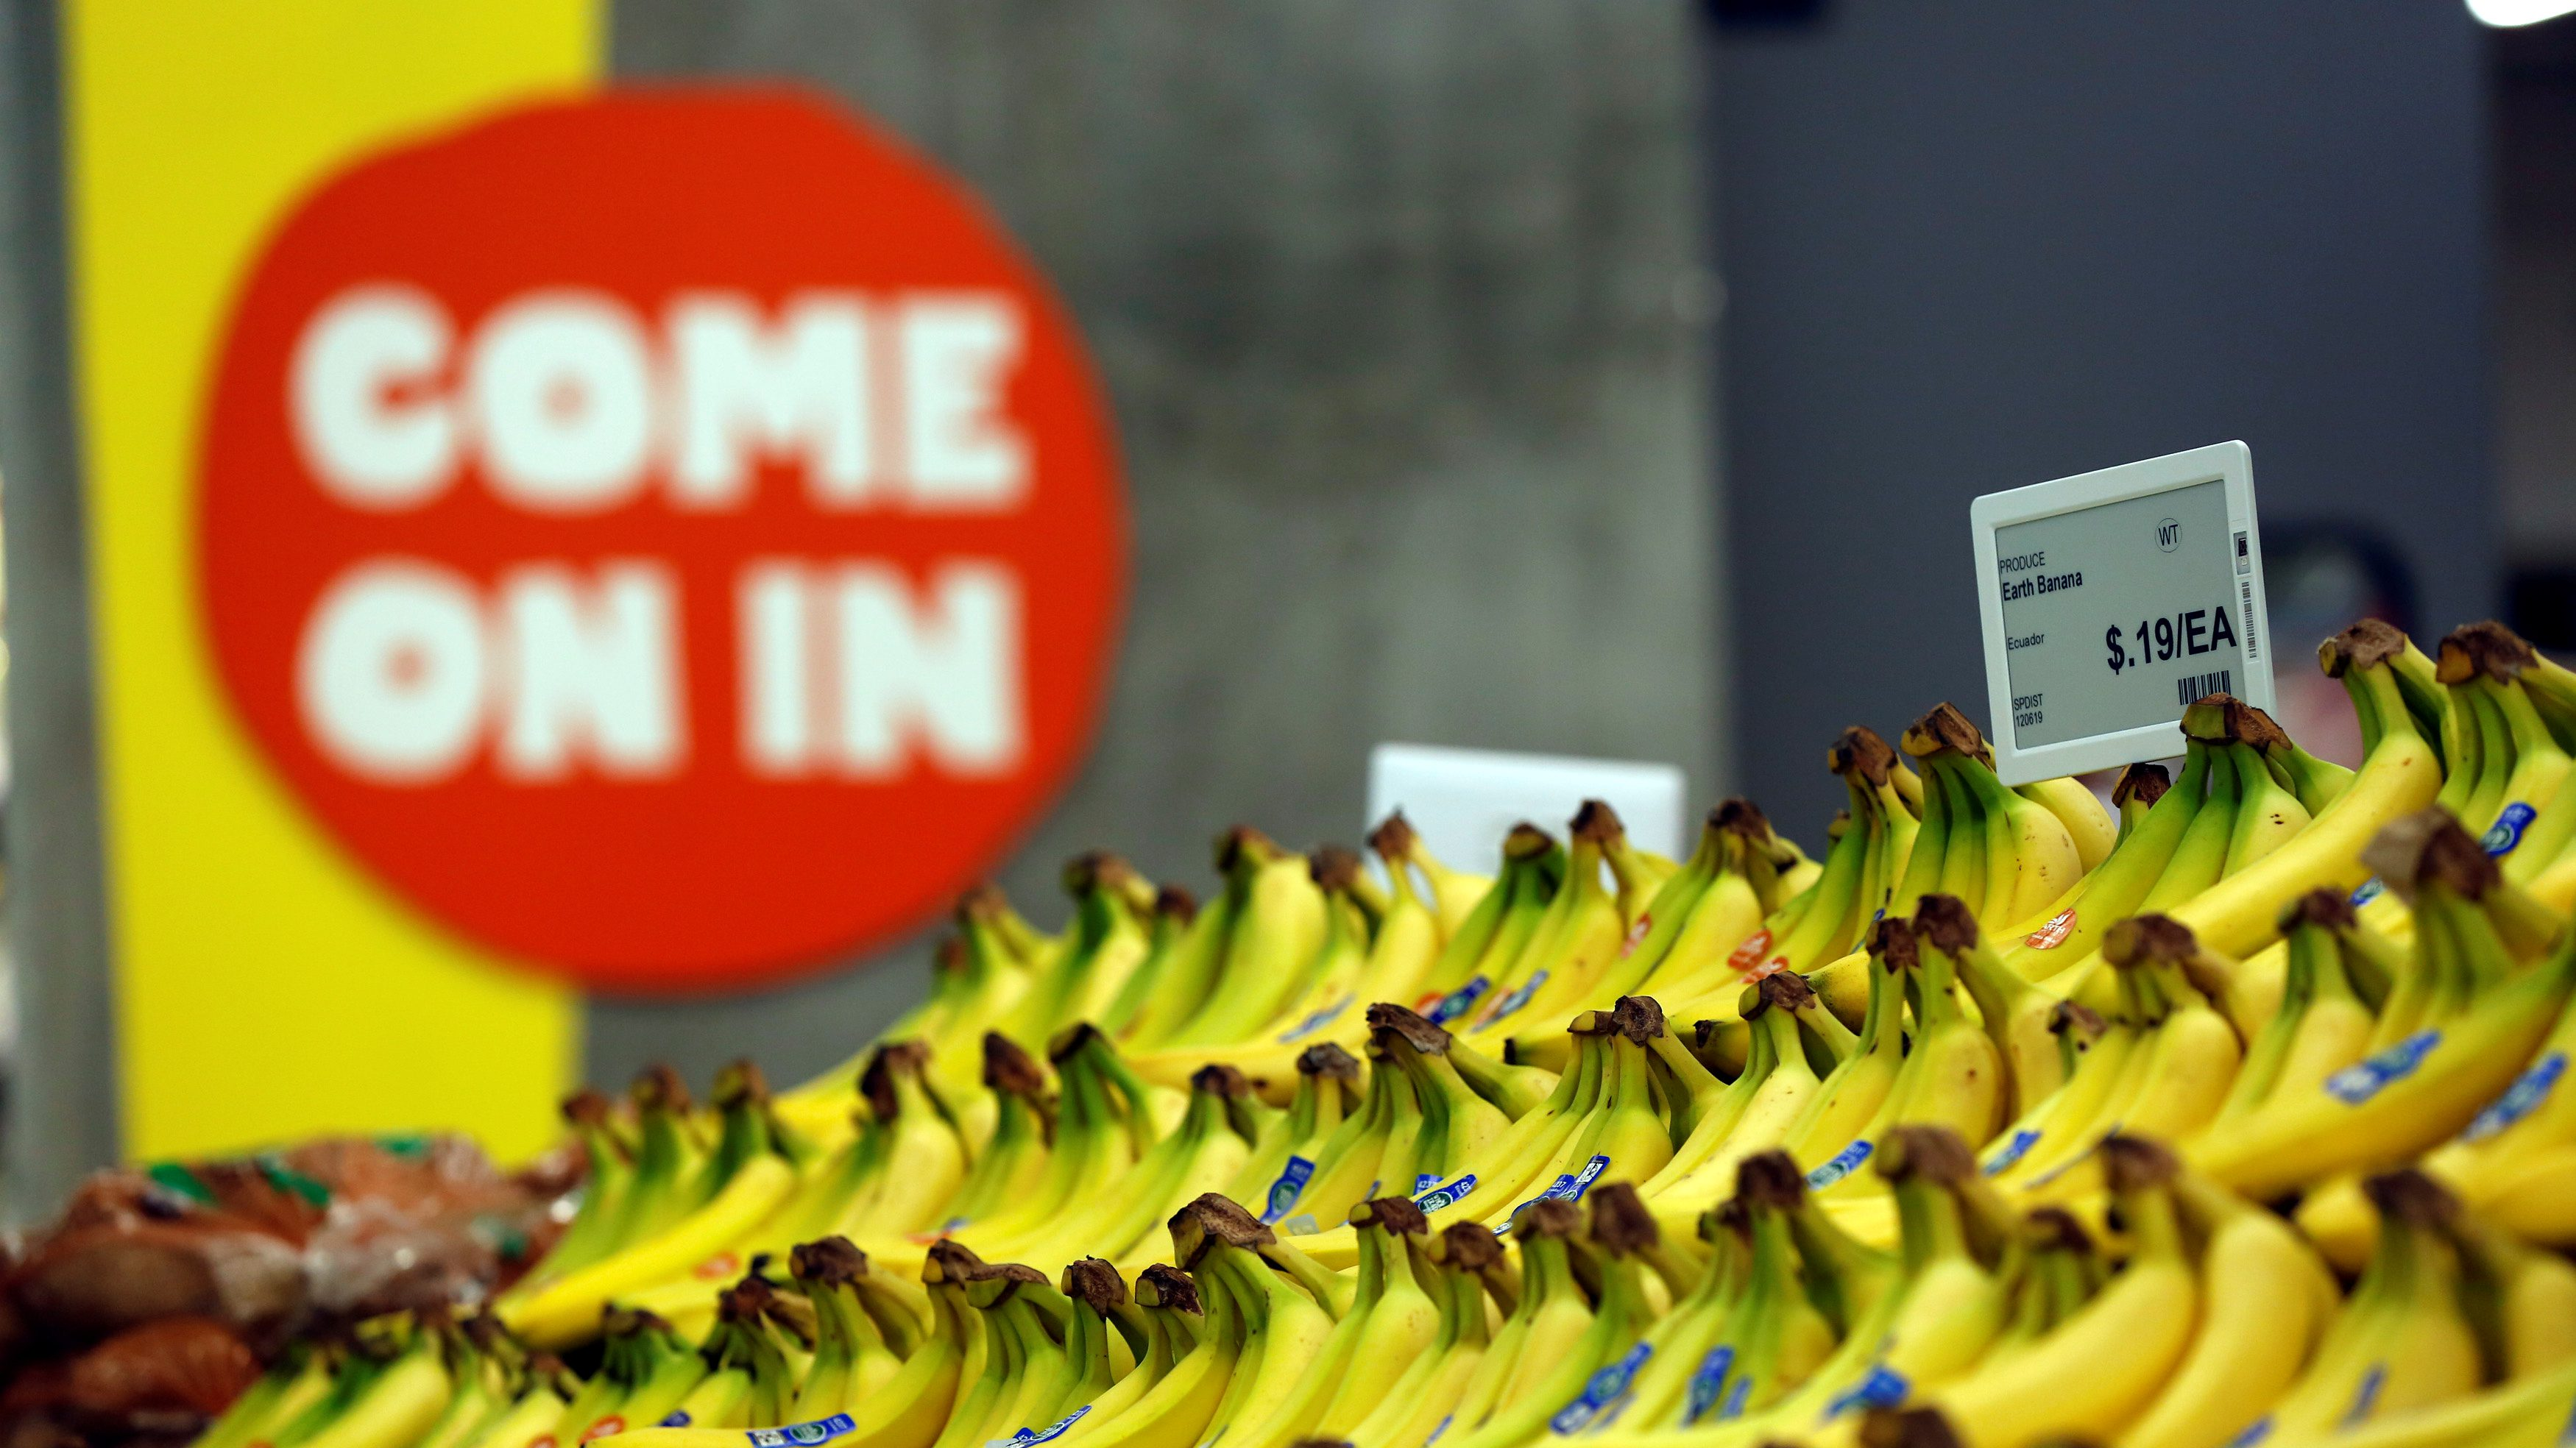 Banana prices might go down in Europe, but there are consequences